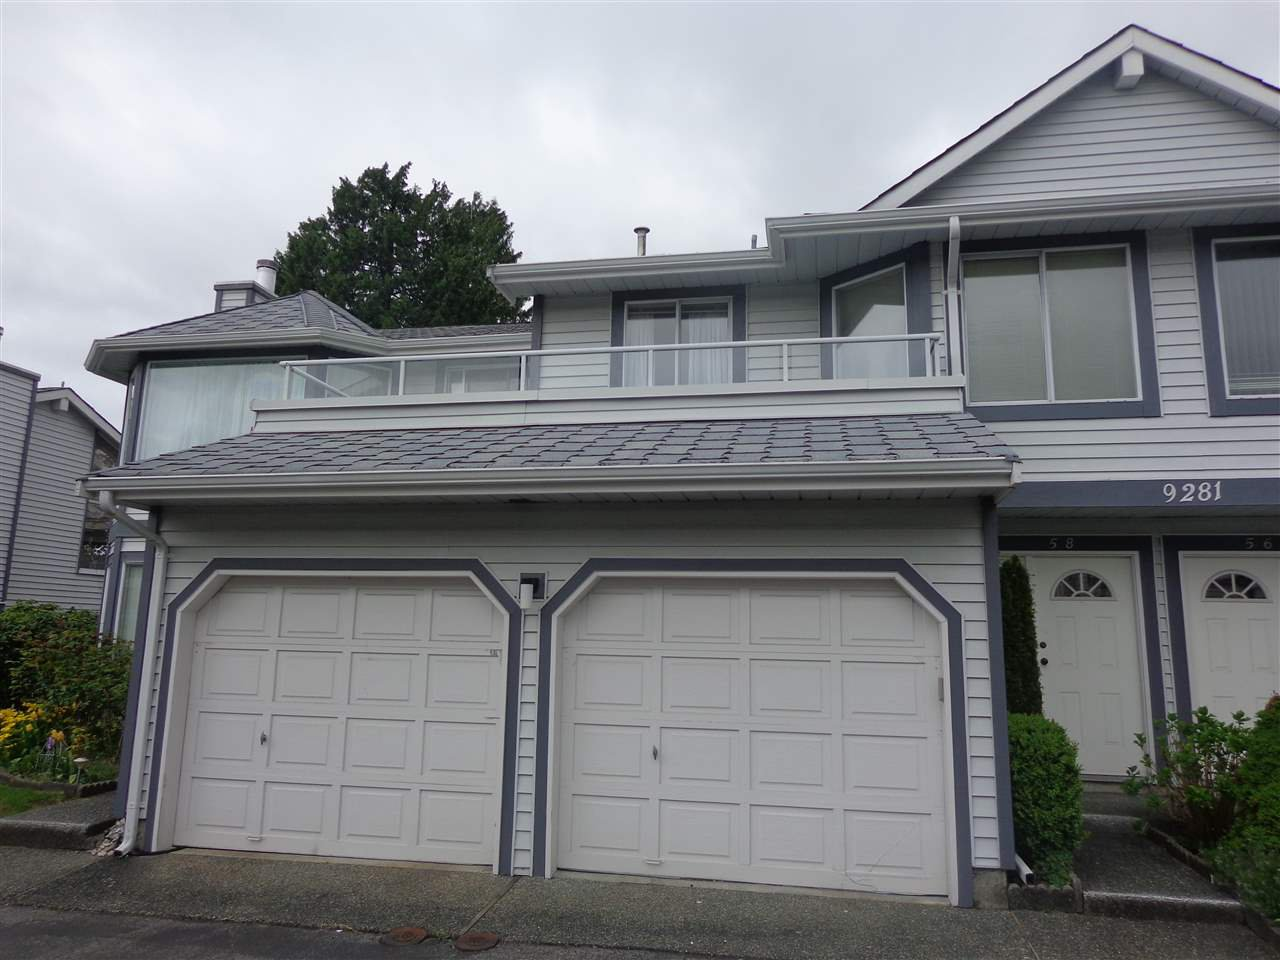 """Main Photo: 58 9281 122ND Street in Surrey: Queen Mary Park Surrey Townhouse for sale in """"KENSINGTON GATE"""" : MLS®# R2265223"""